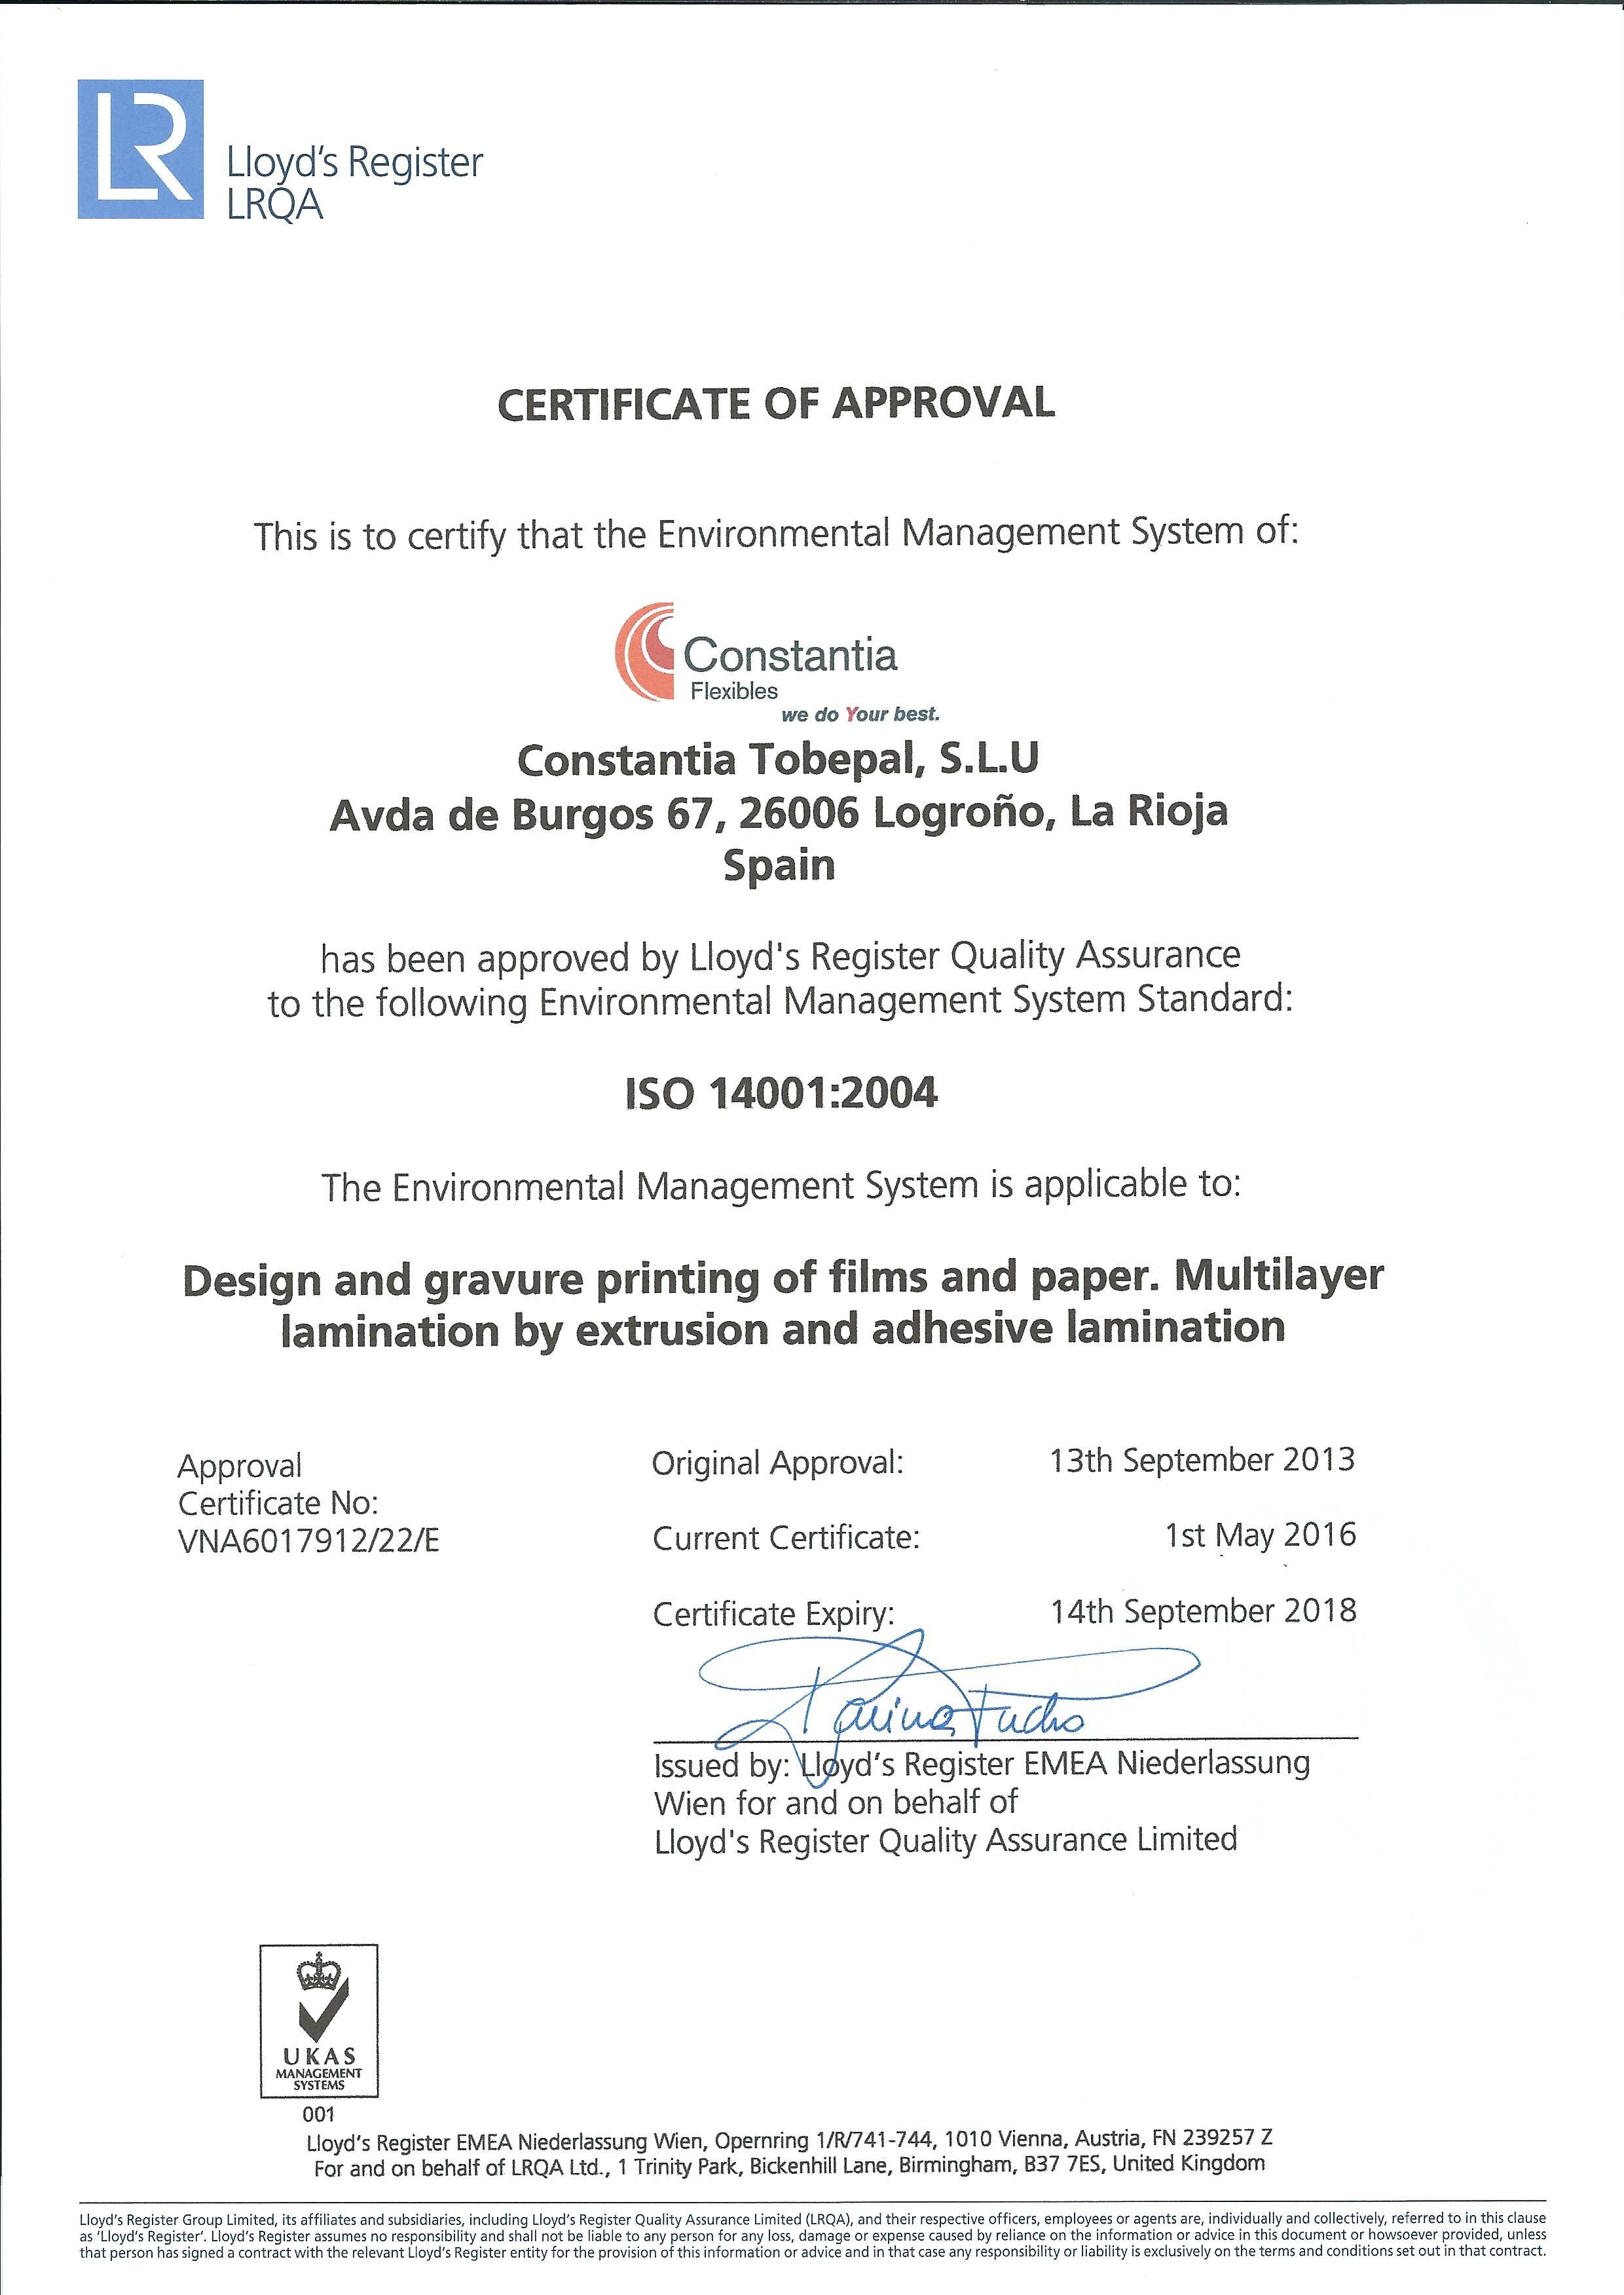 Certification letter supplier certificates letters conformity certification letter supplier certificates letters conformity birth certificate marathi cover aiddatafo Gallery